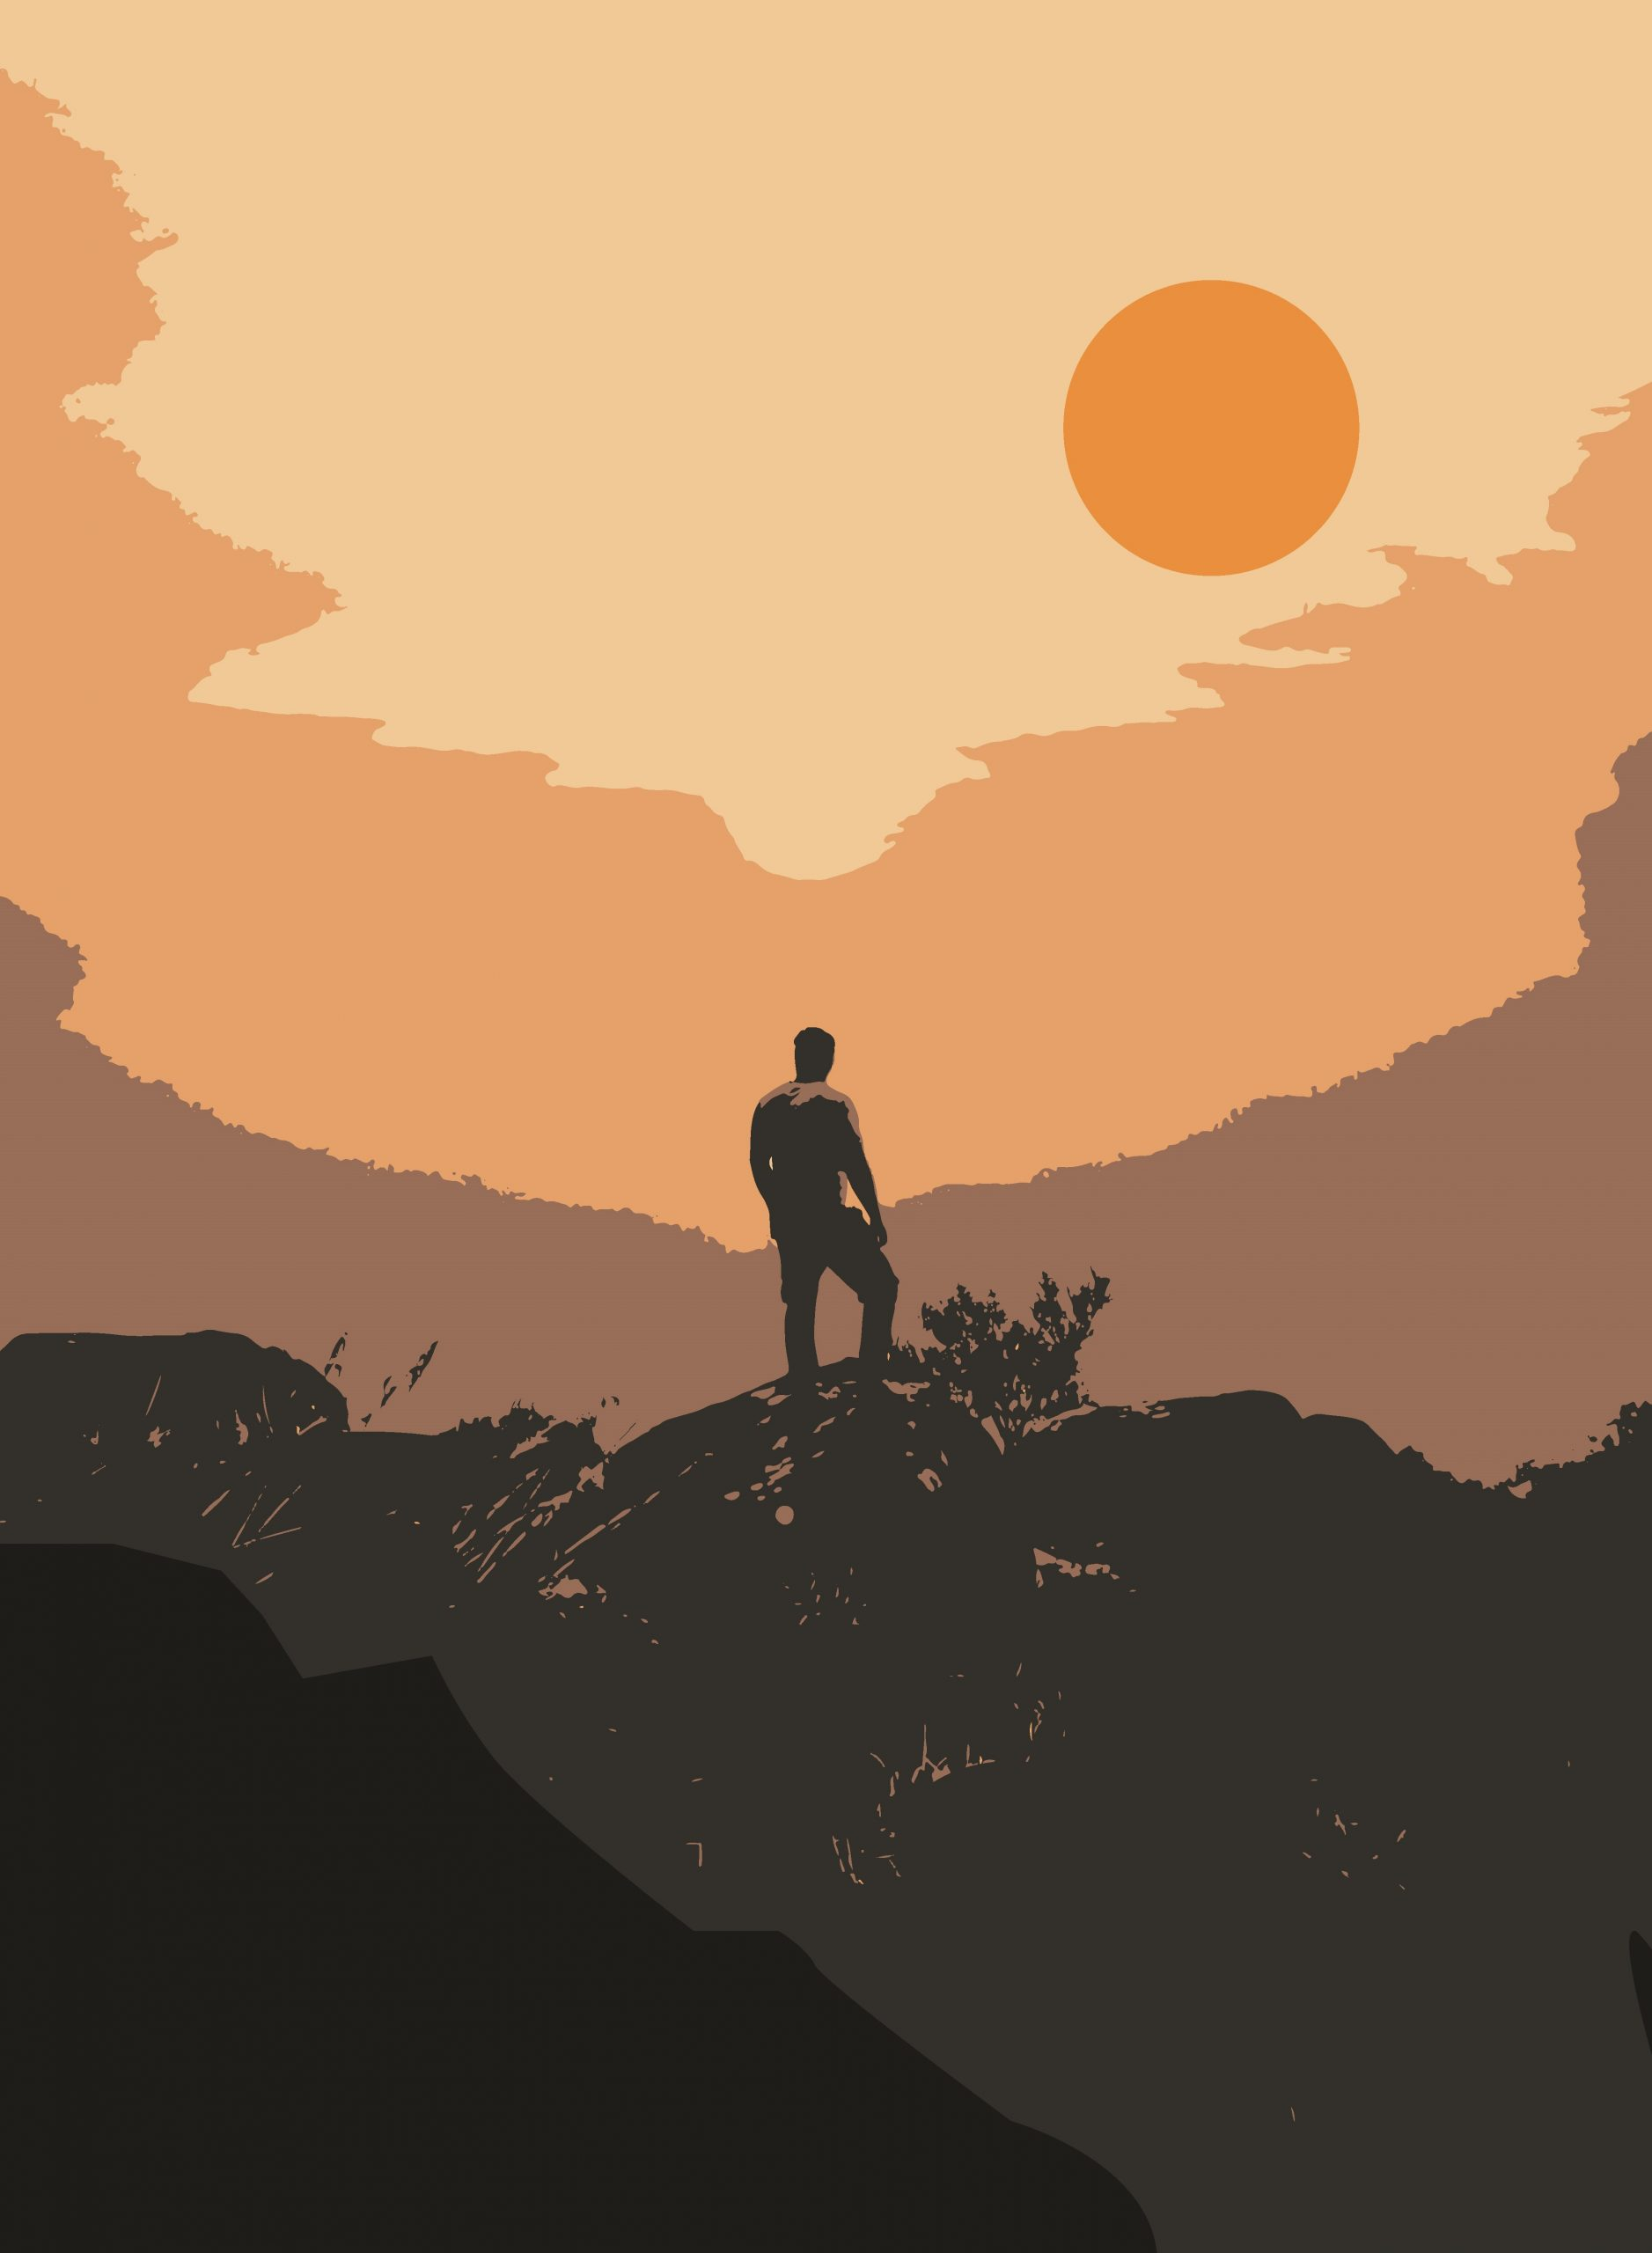 Illustration of a hiker on a mountain top